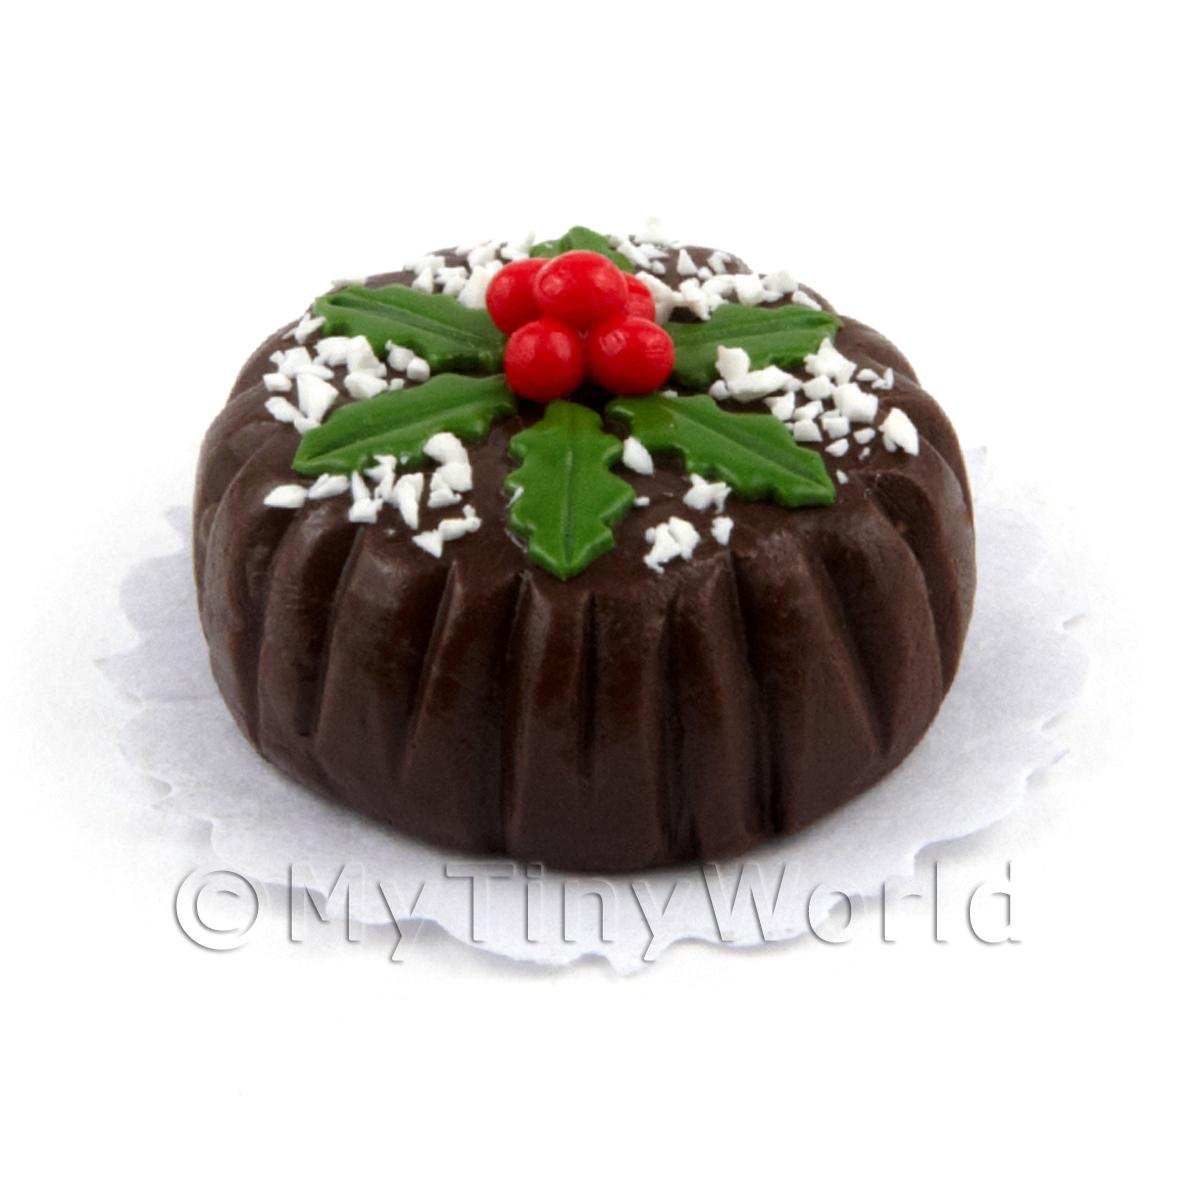 Dolls House Miniature Chocolate Christmas Cake With Berries and Hol